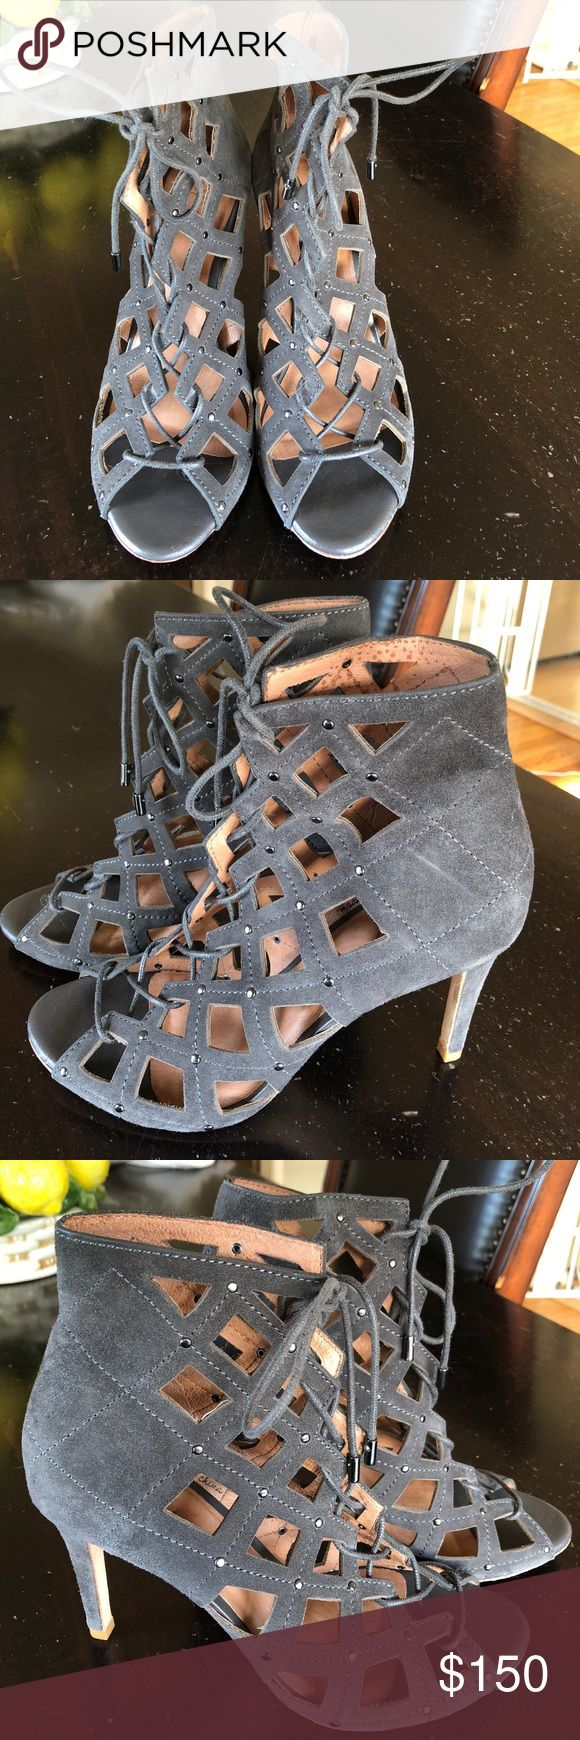 Joie caged grey suede heels Joie caged grey suede heels worn one ☝️ n excellent condition super edgy Joie Shoes Heels